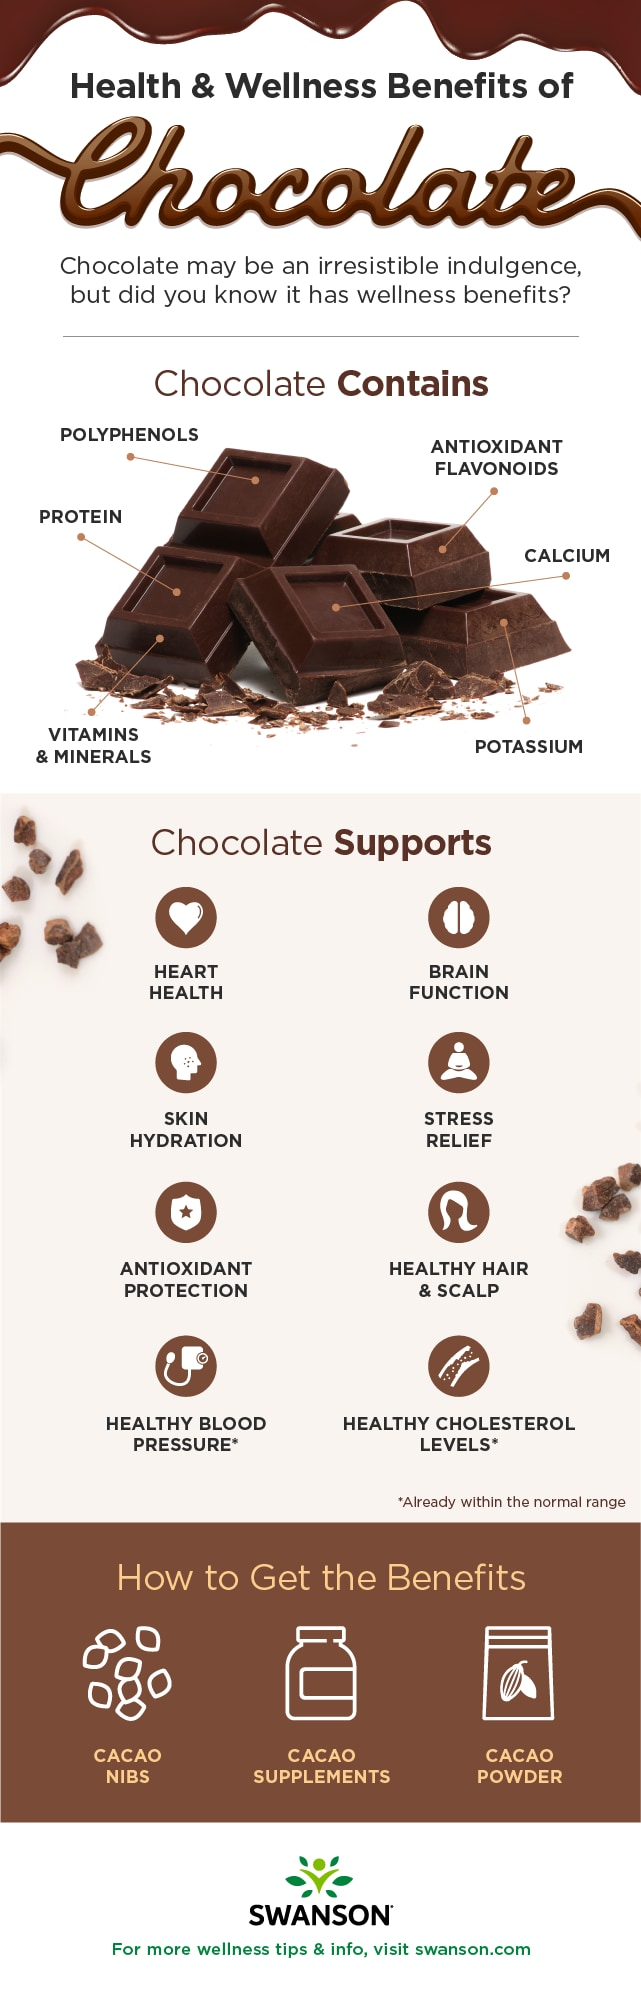 Benefits of Chocolate Infographic